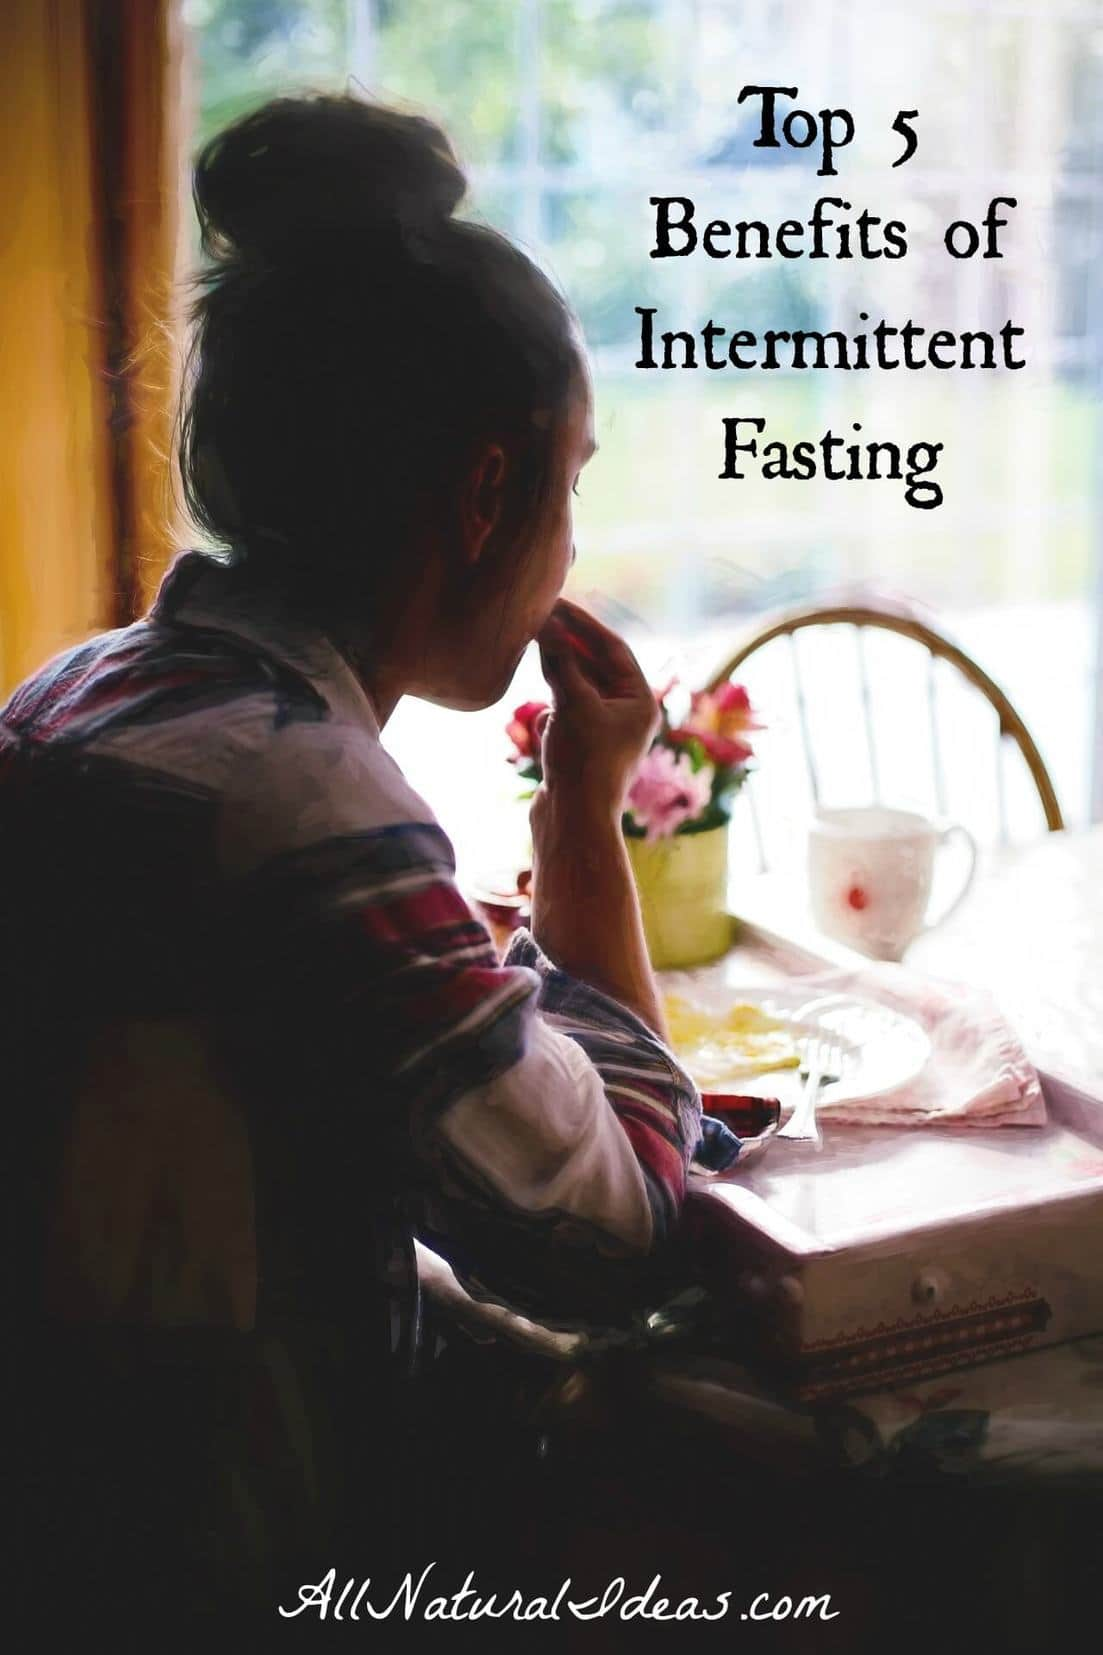 Want to lose weight and boost the functionality of your cells? Check out the top health benefits of an intermittent fasting keto diet!